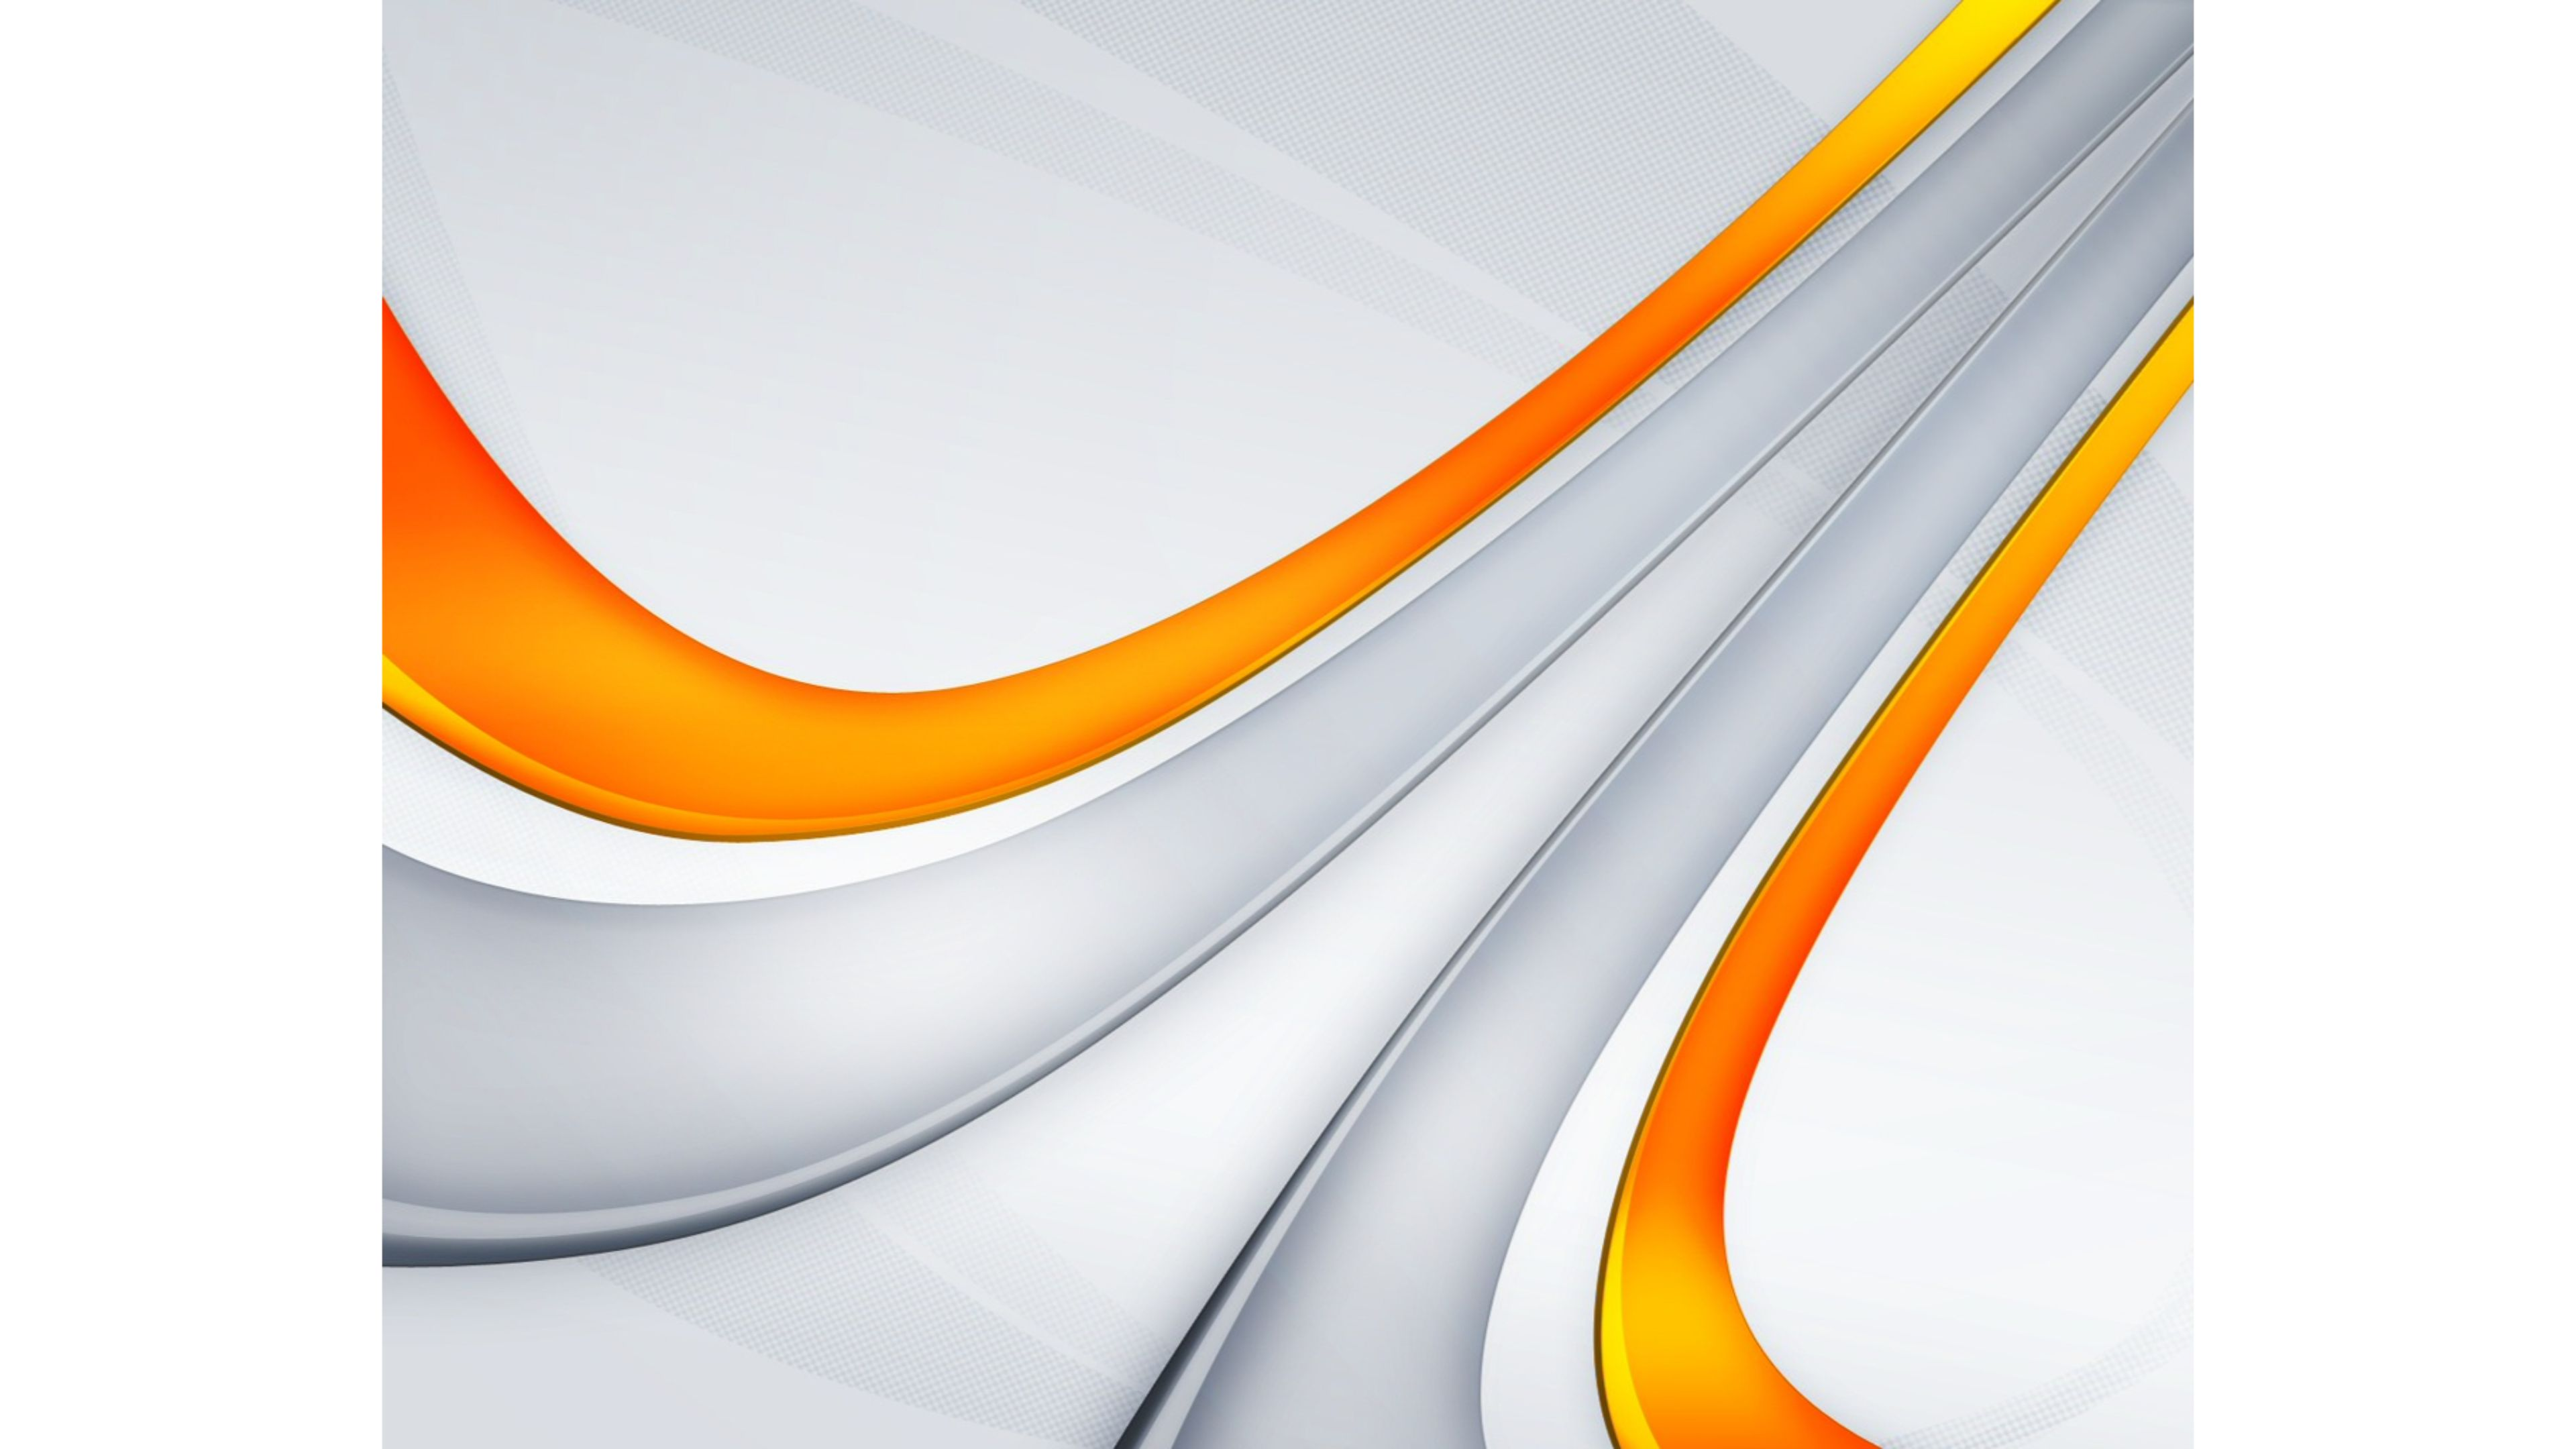 3d Hd Live Wallpaper For Android Phone Download Orange And Grey Wallpaper Gallery